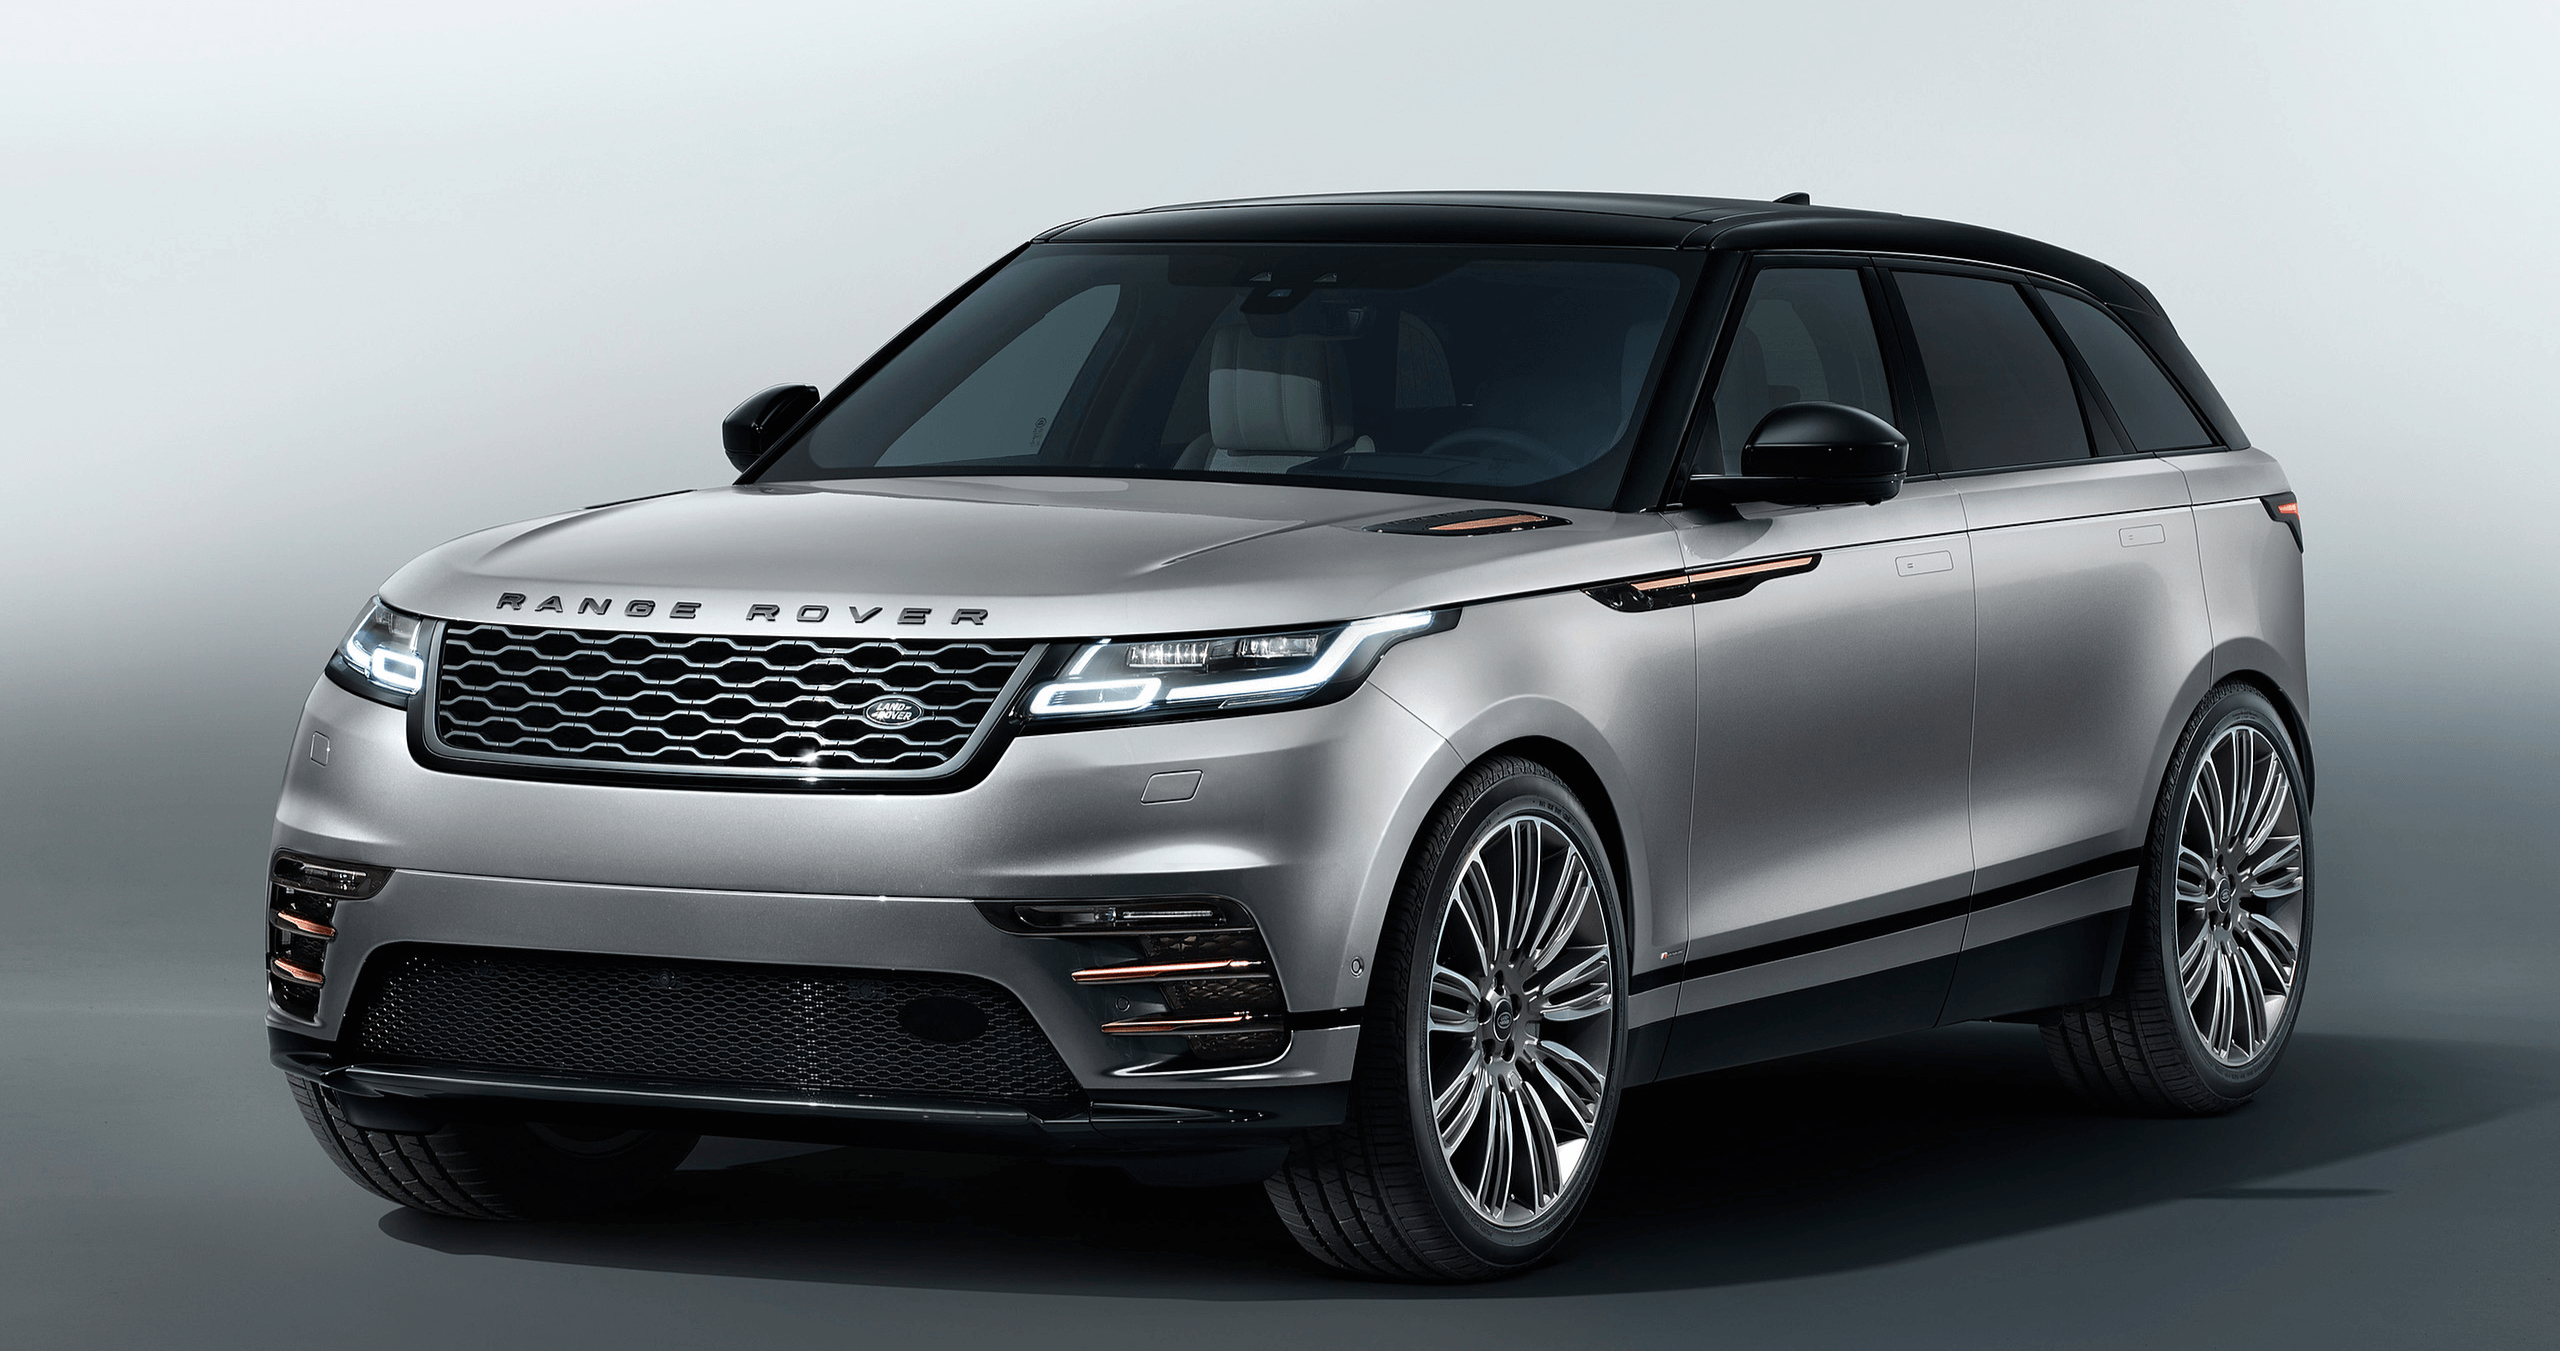 Range Rover Velar Lease Deal - Yorkshire Fleet